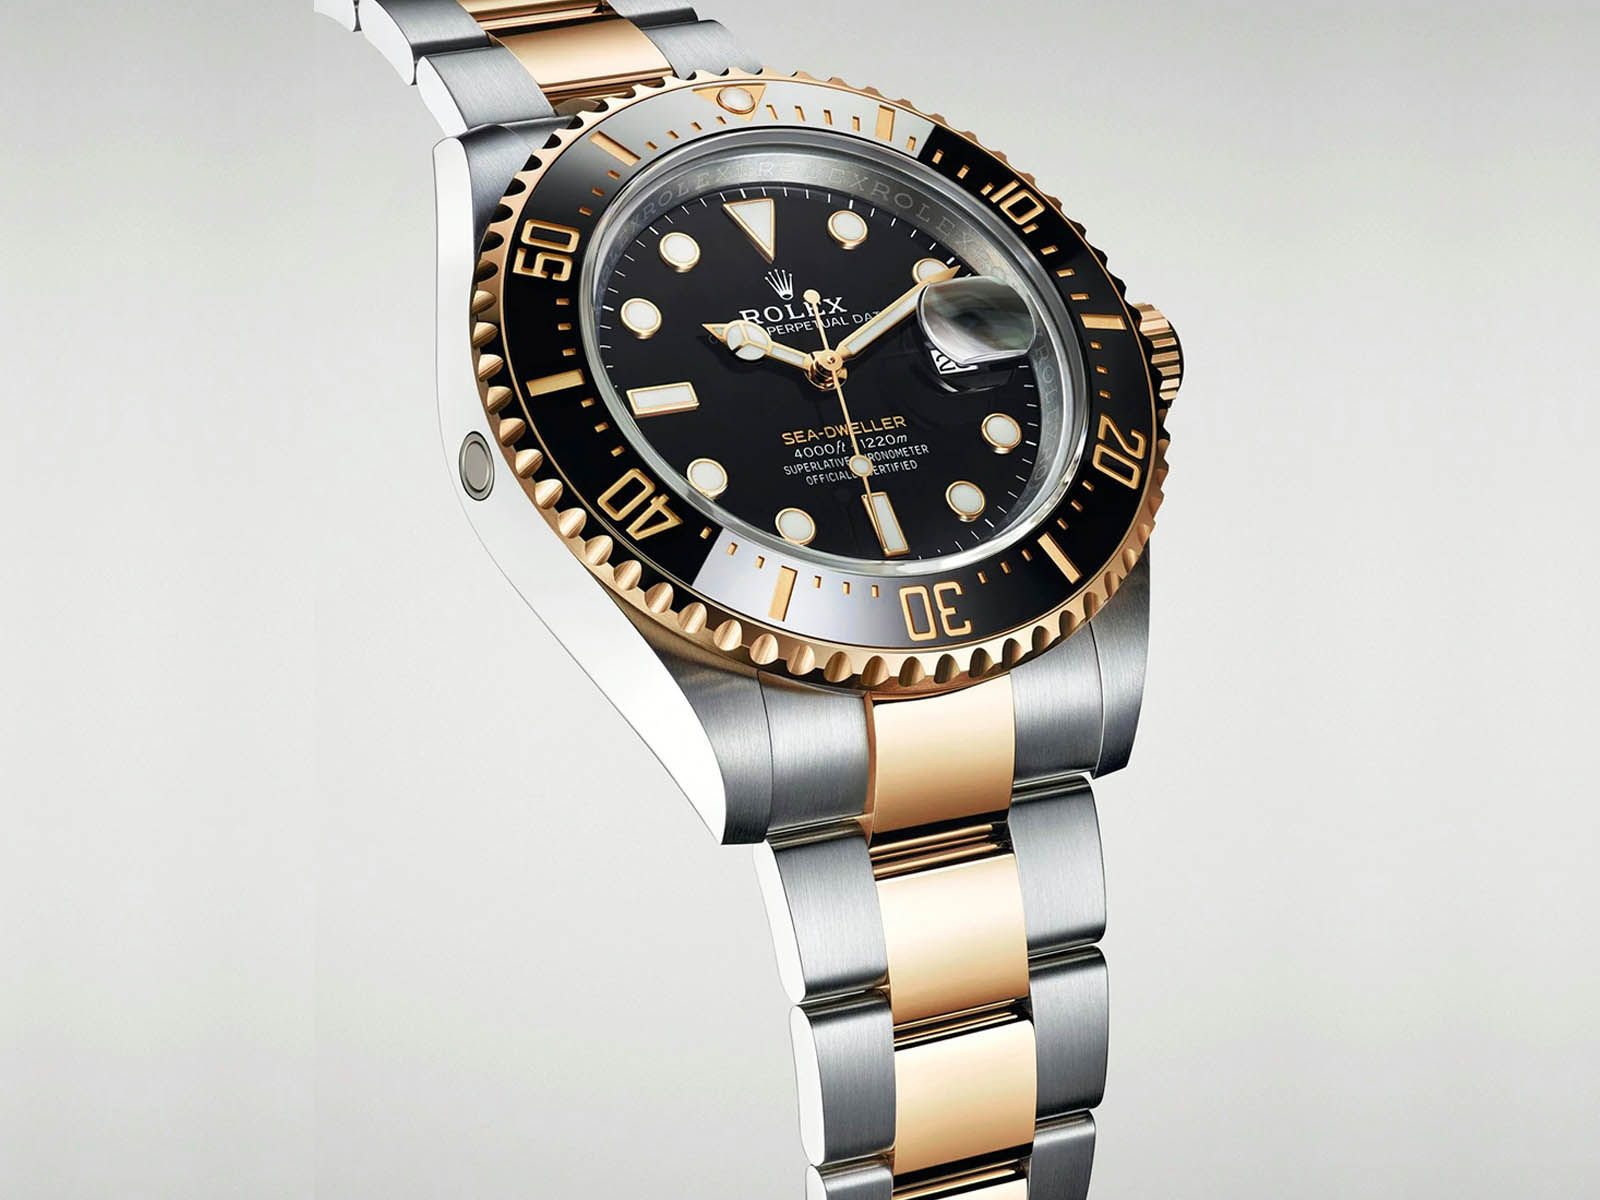 126603-rolex-oyster-perpetual-sea-dweller-two-tone-2.jpg